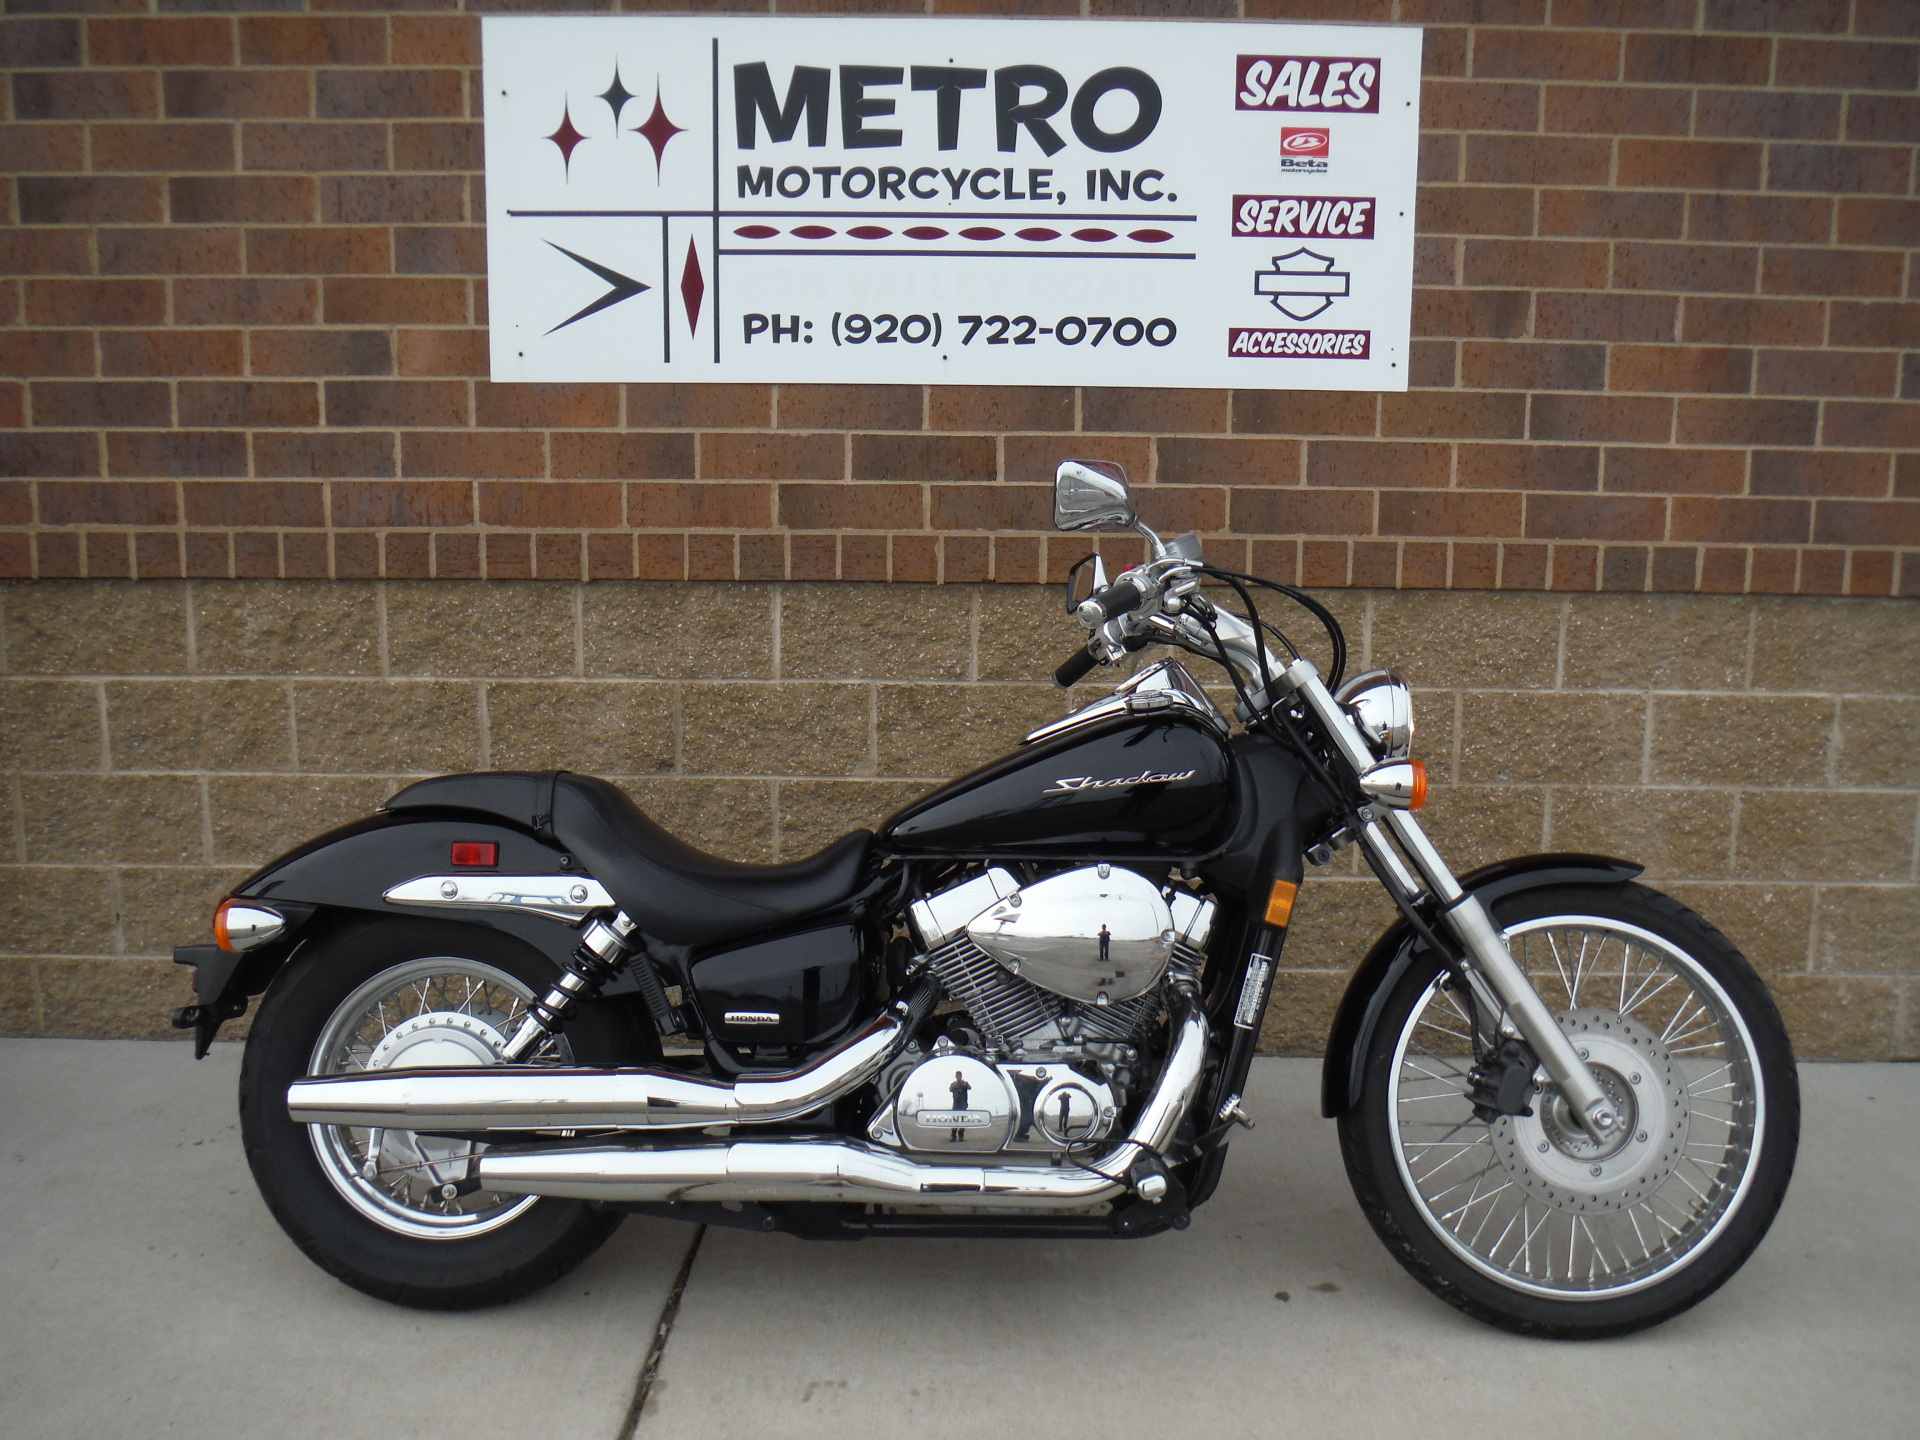 2012 Honda VT750 Shadow Spirit